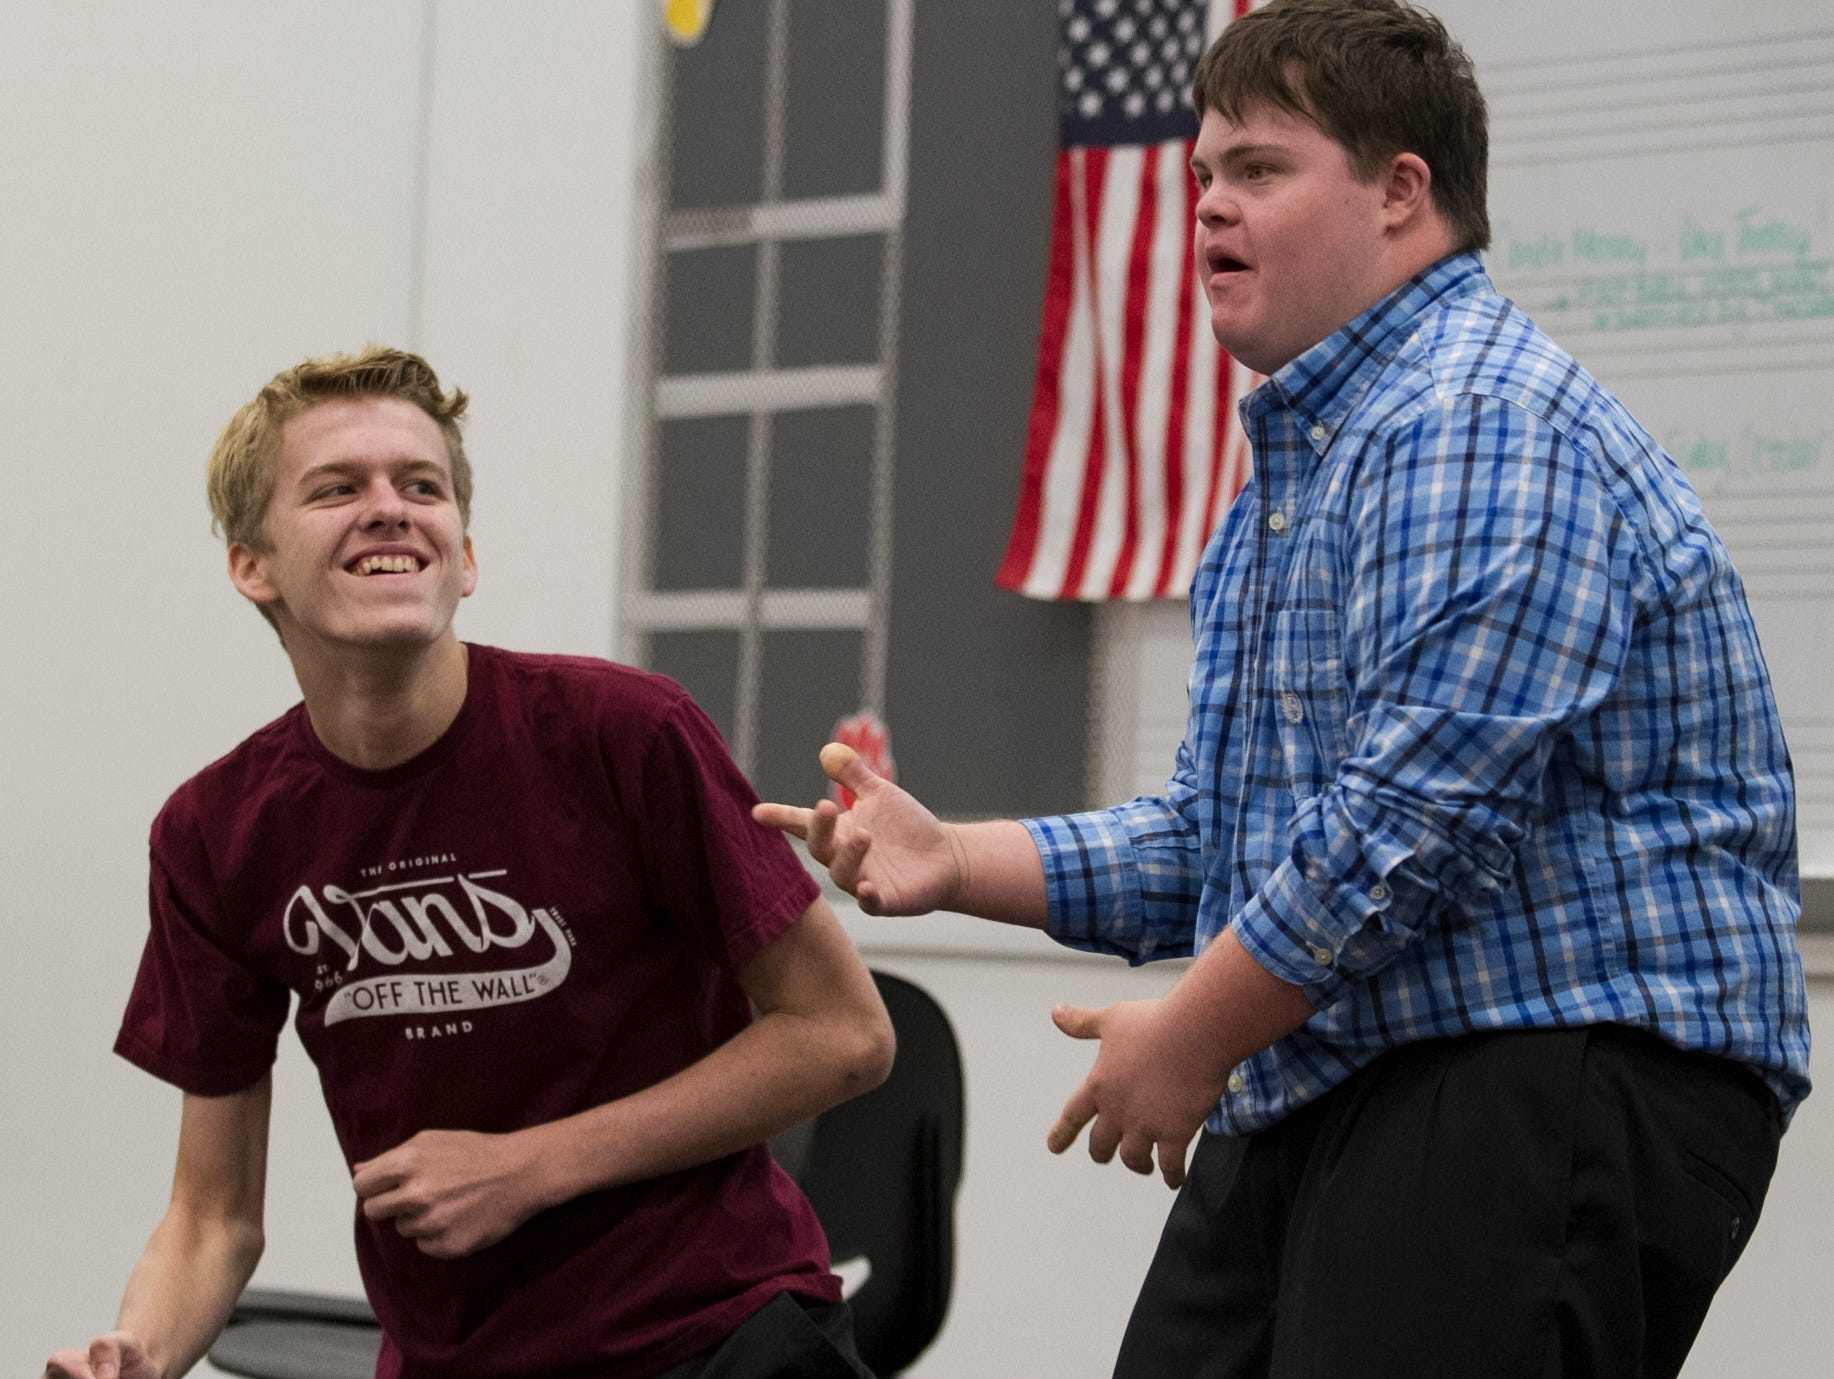 Christian Diggs, right, and classmate Logan Schweitzer perform a rap song together during an improvisation class at Ida Baker High School in Cape Coral on Tuesday, Oct. 11.